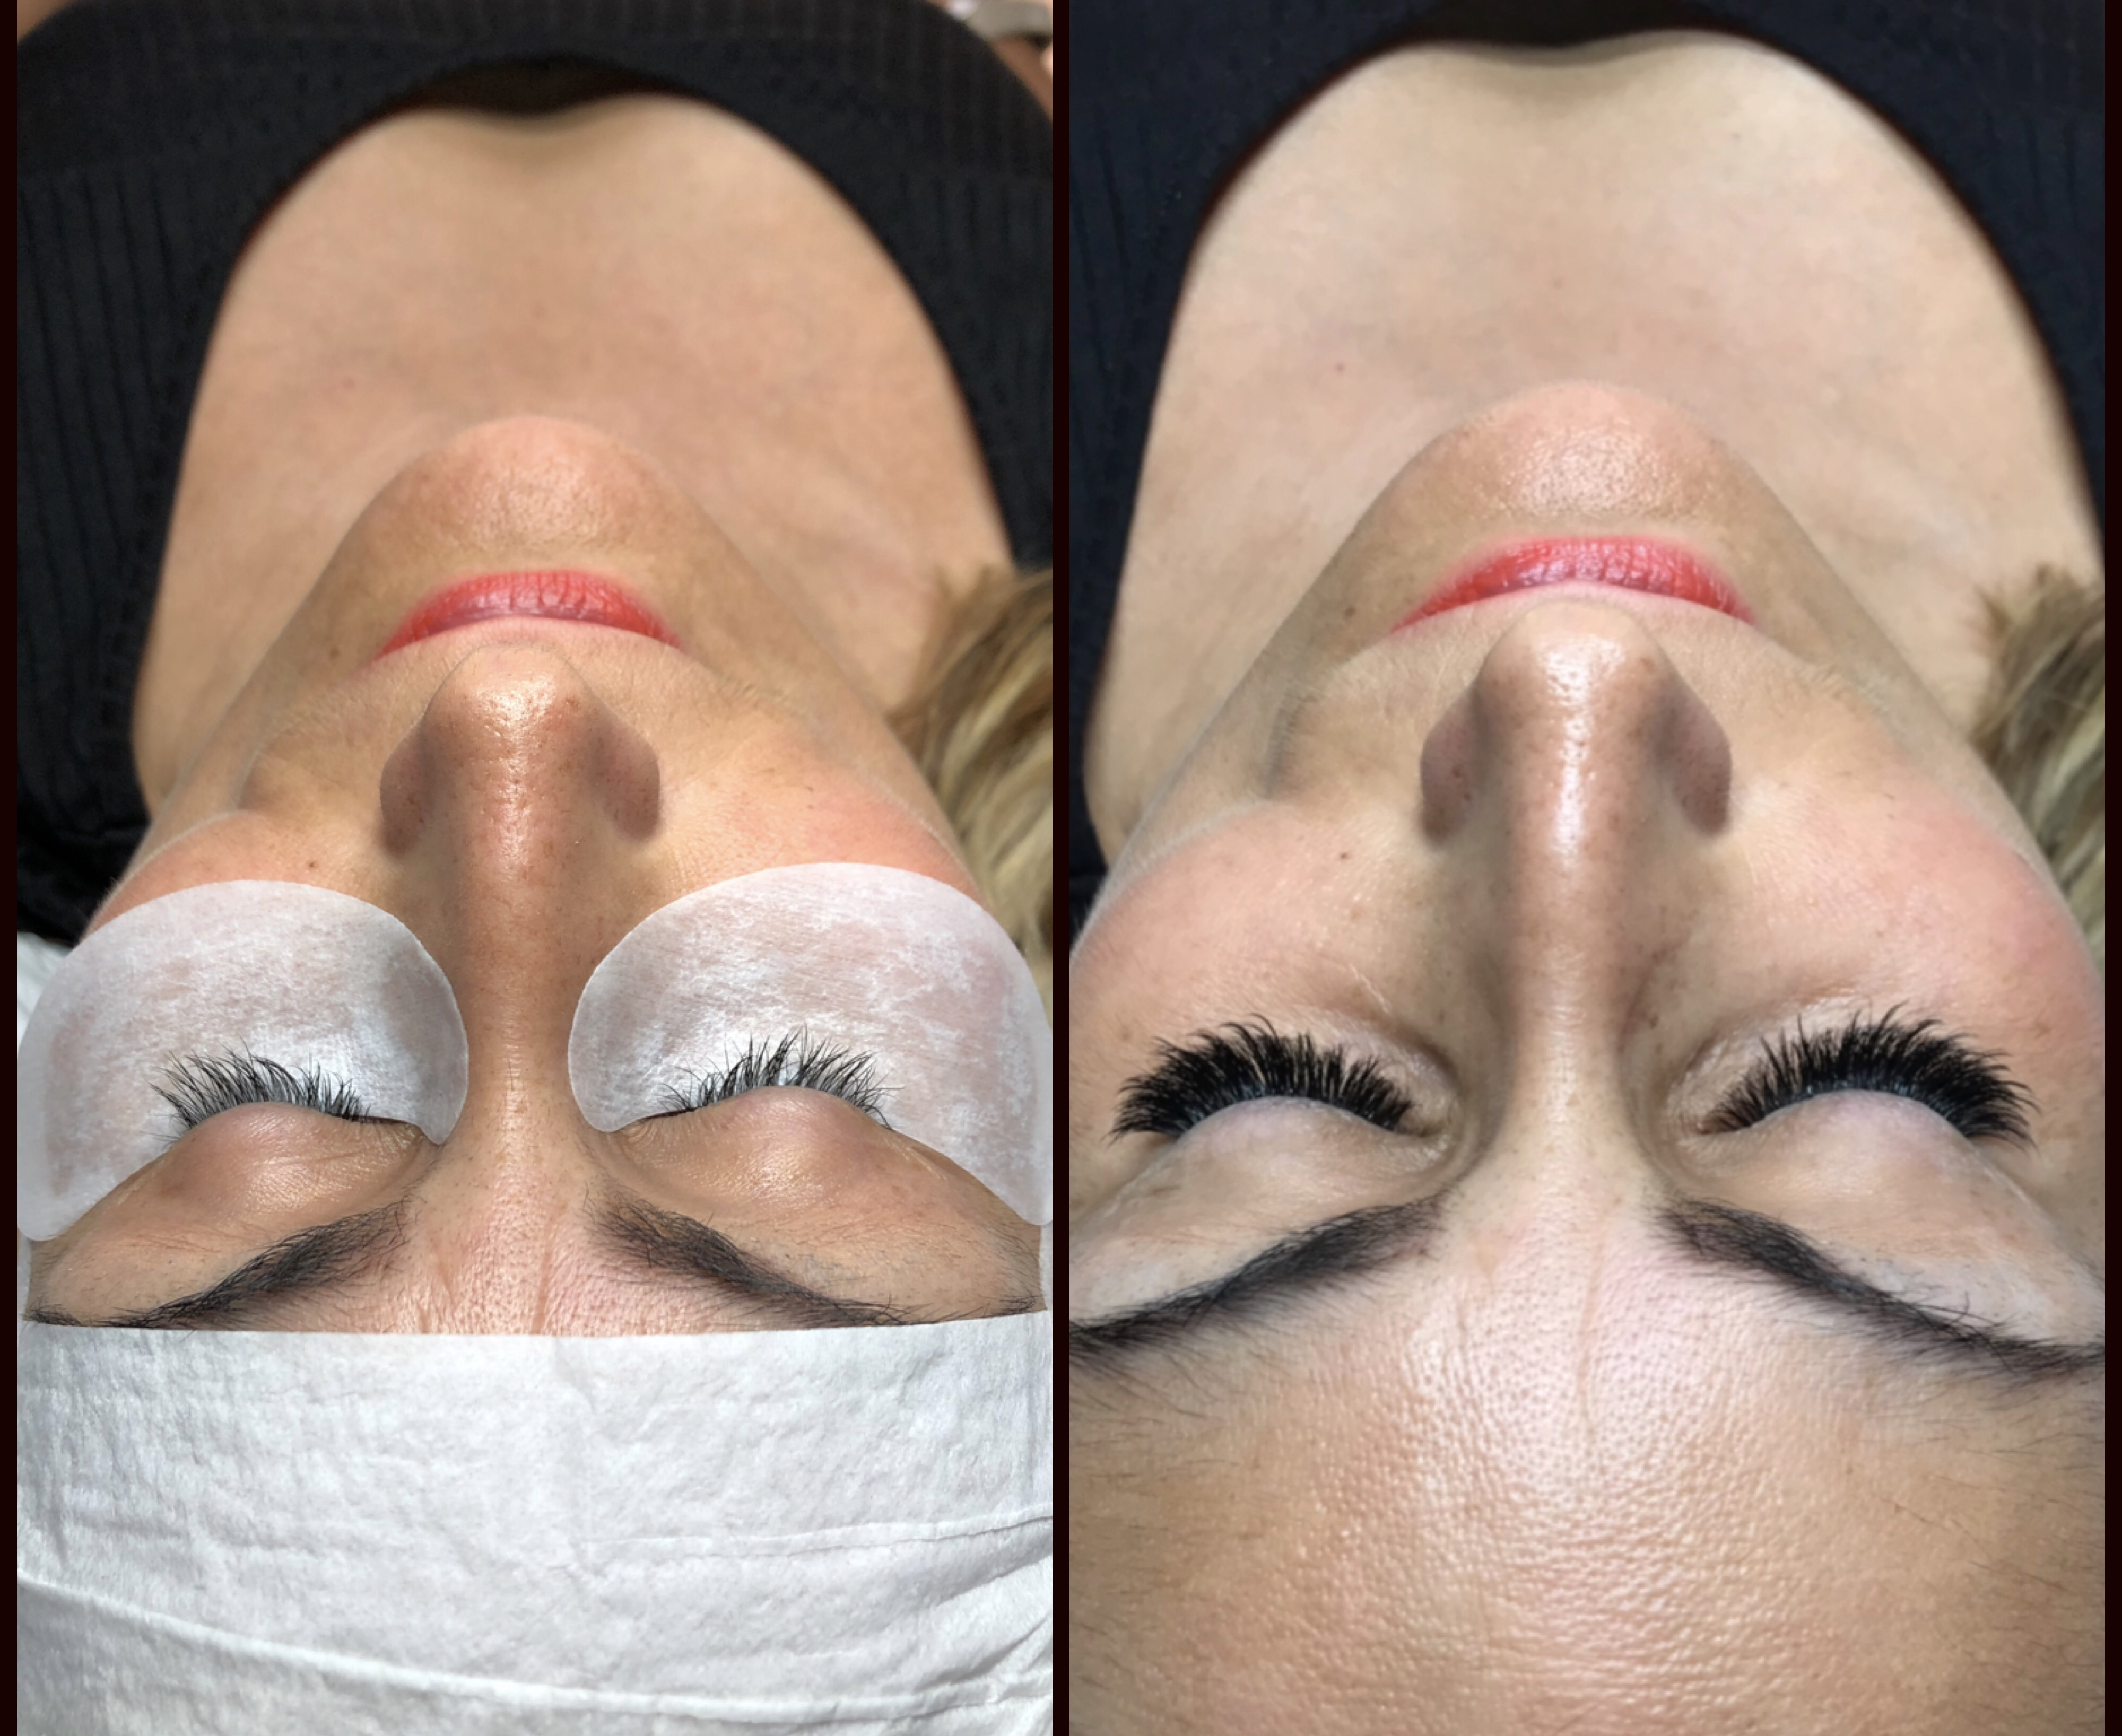 Luxurious Lashes at London Lash Studio, St. John's Wood: Before and After